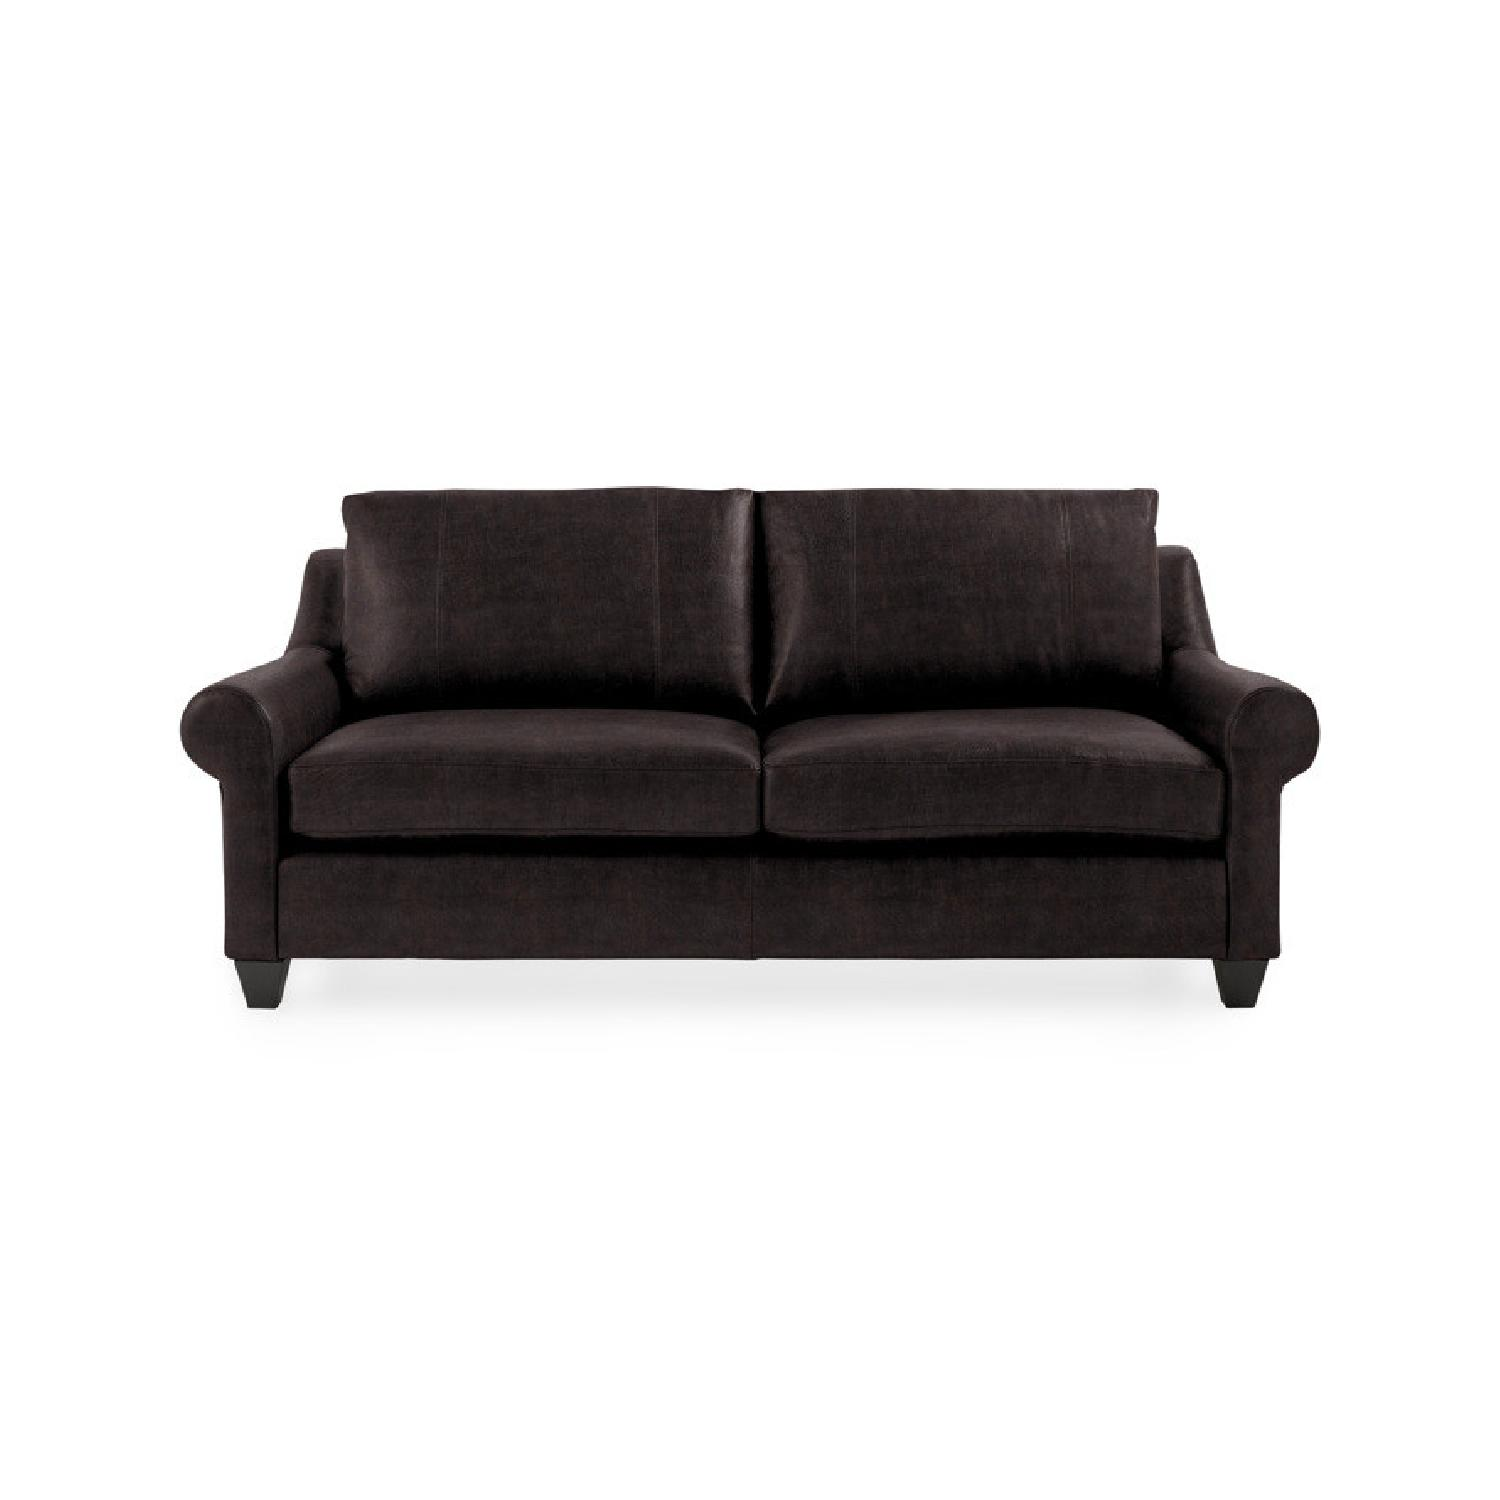 Arhaus Rockway Leather Sofa - image-0